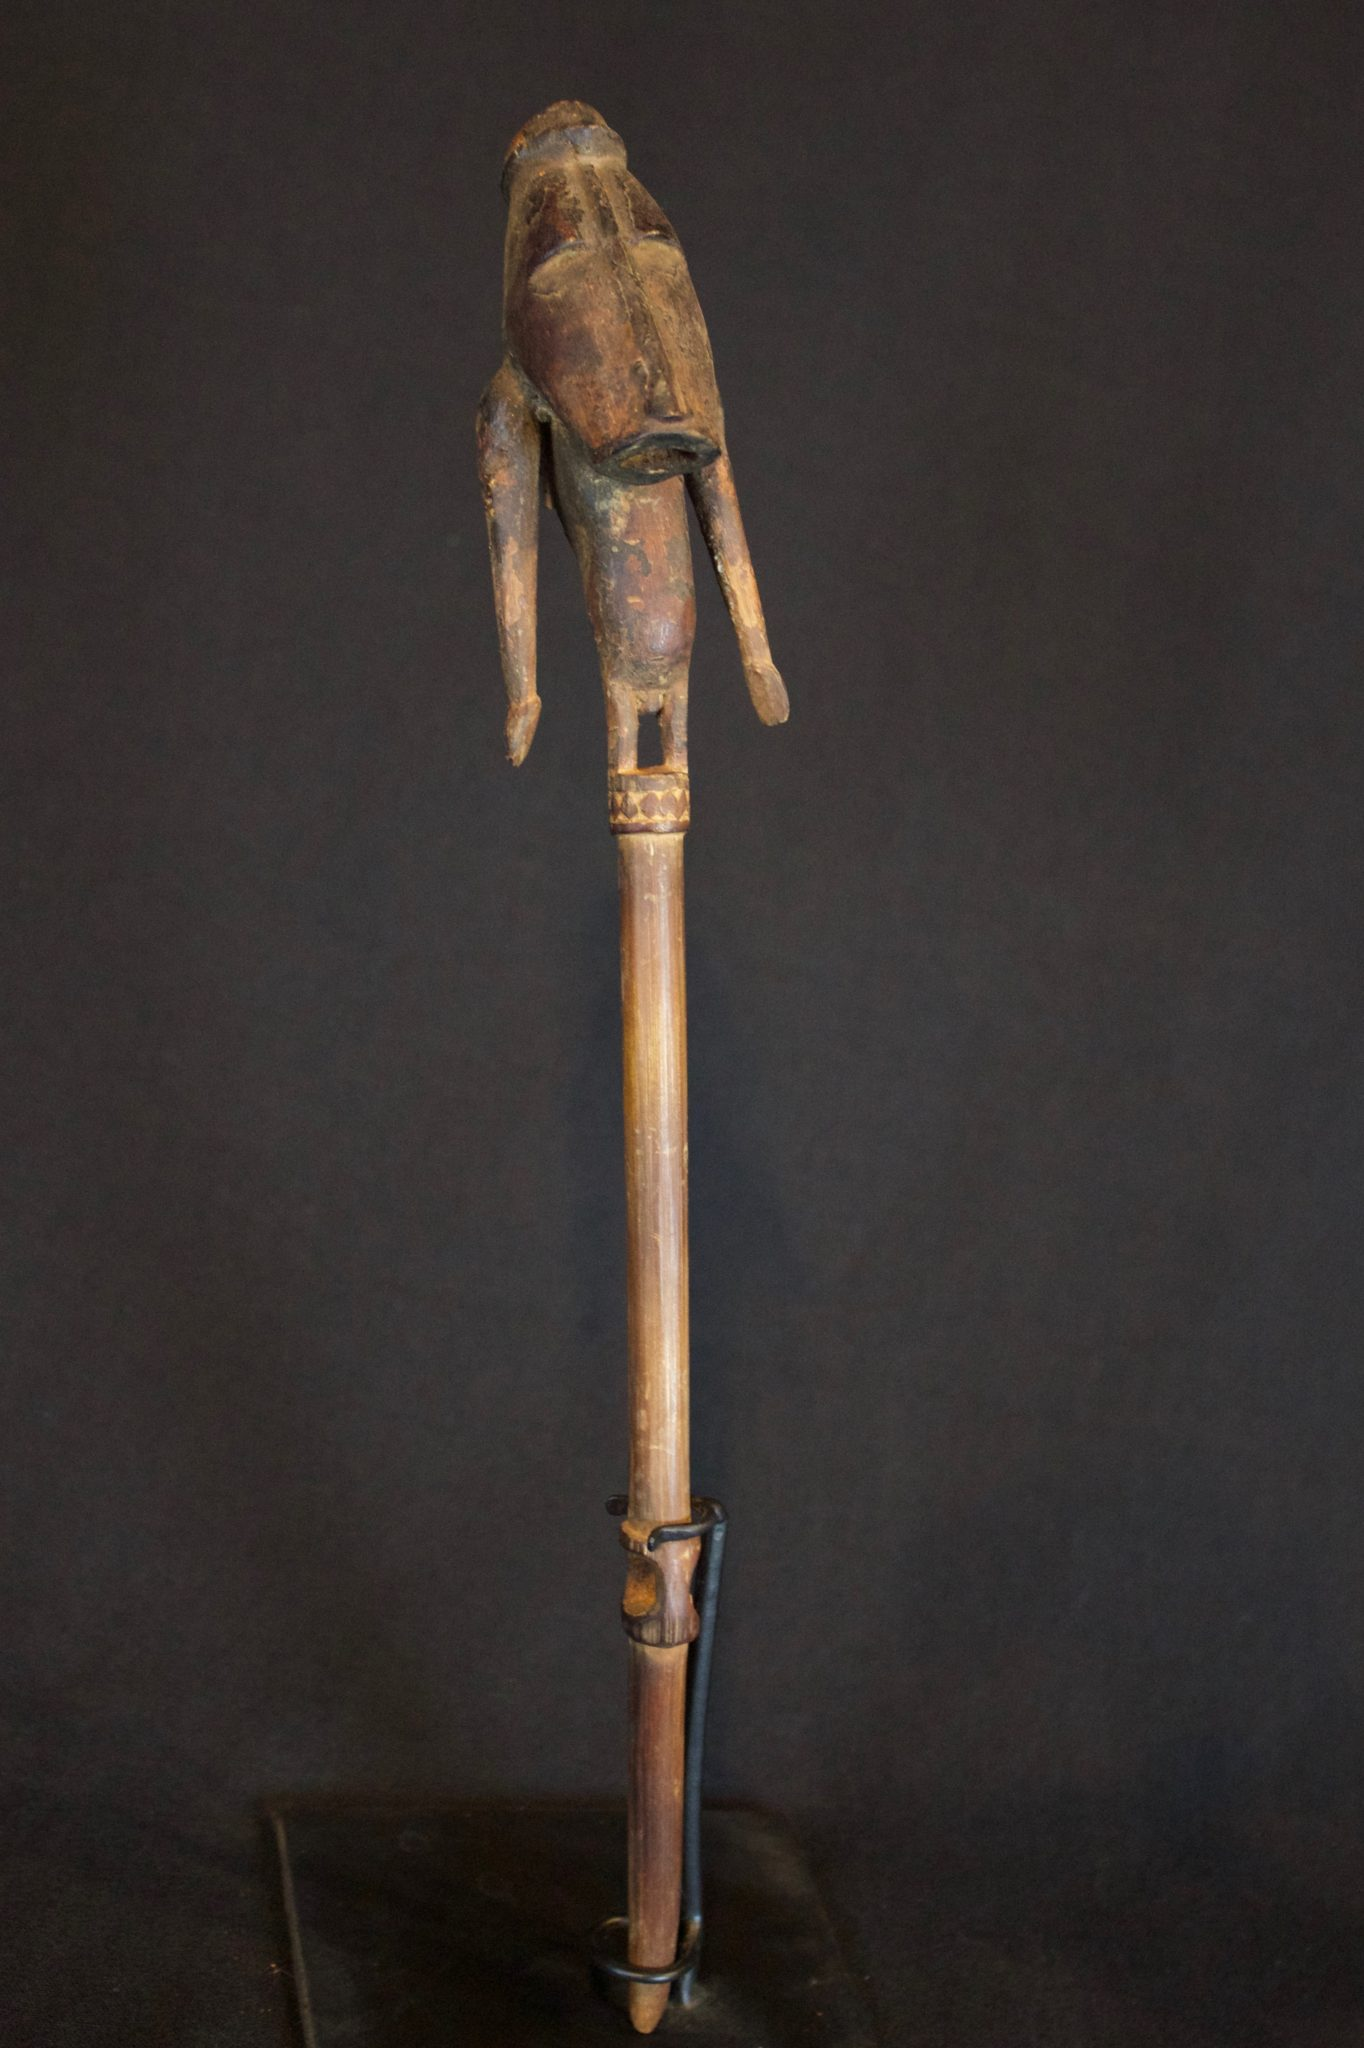 "Shaman Magic Figure, Papúa New Guinea, Indonesia, Early 20th c, Wood, fiber. Used in ritual ceremonies to stop rain. 11 ½"" x 1 ½"" x 1 ¼"", $135."